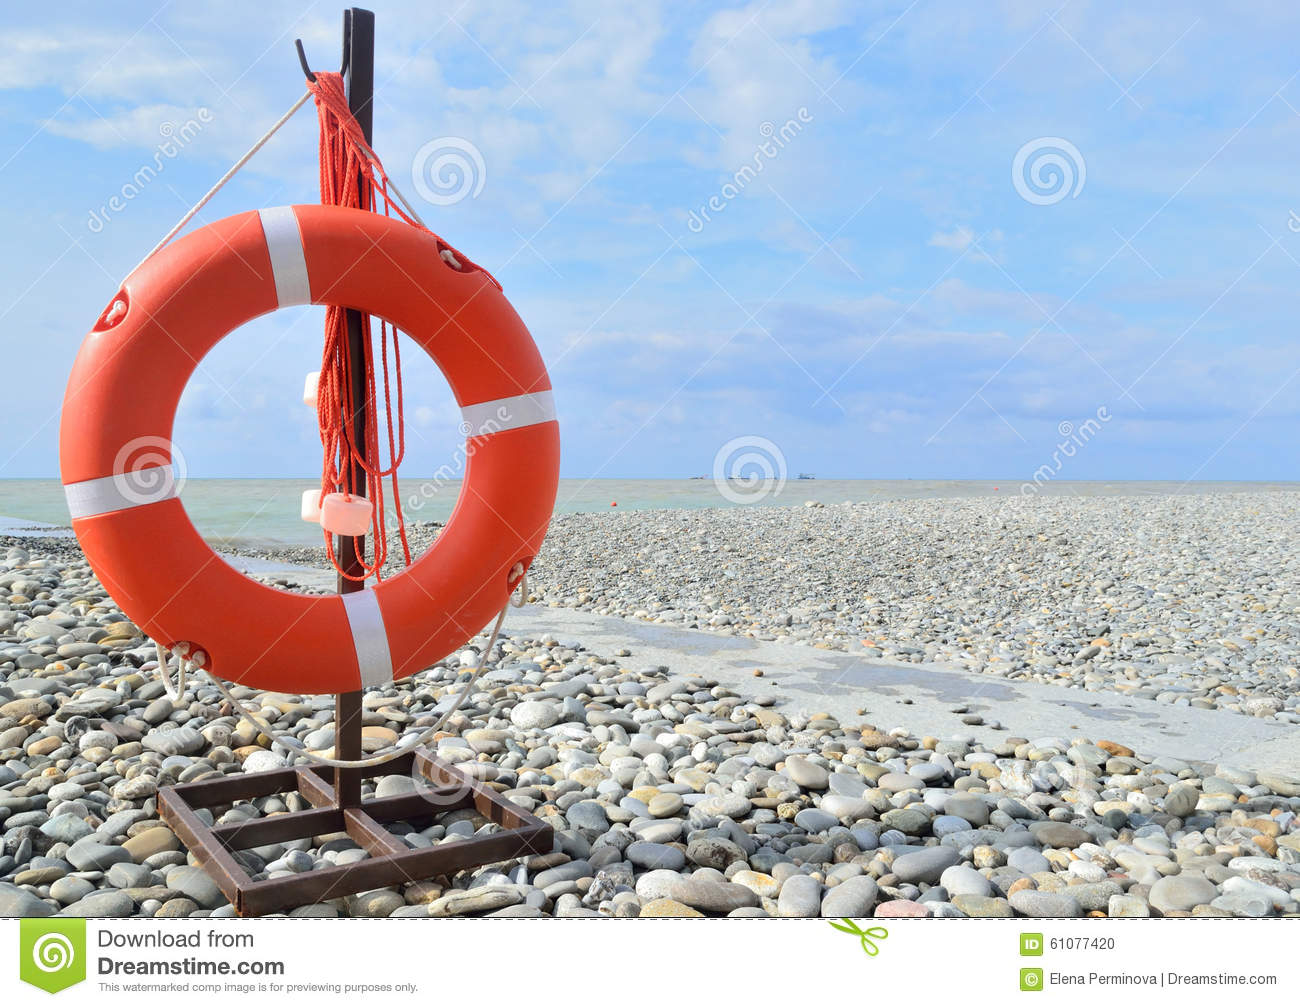 Orange lifebuoy attached to the seaside